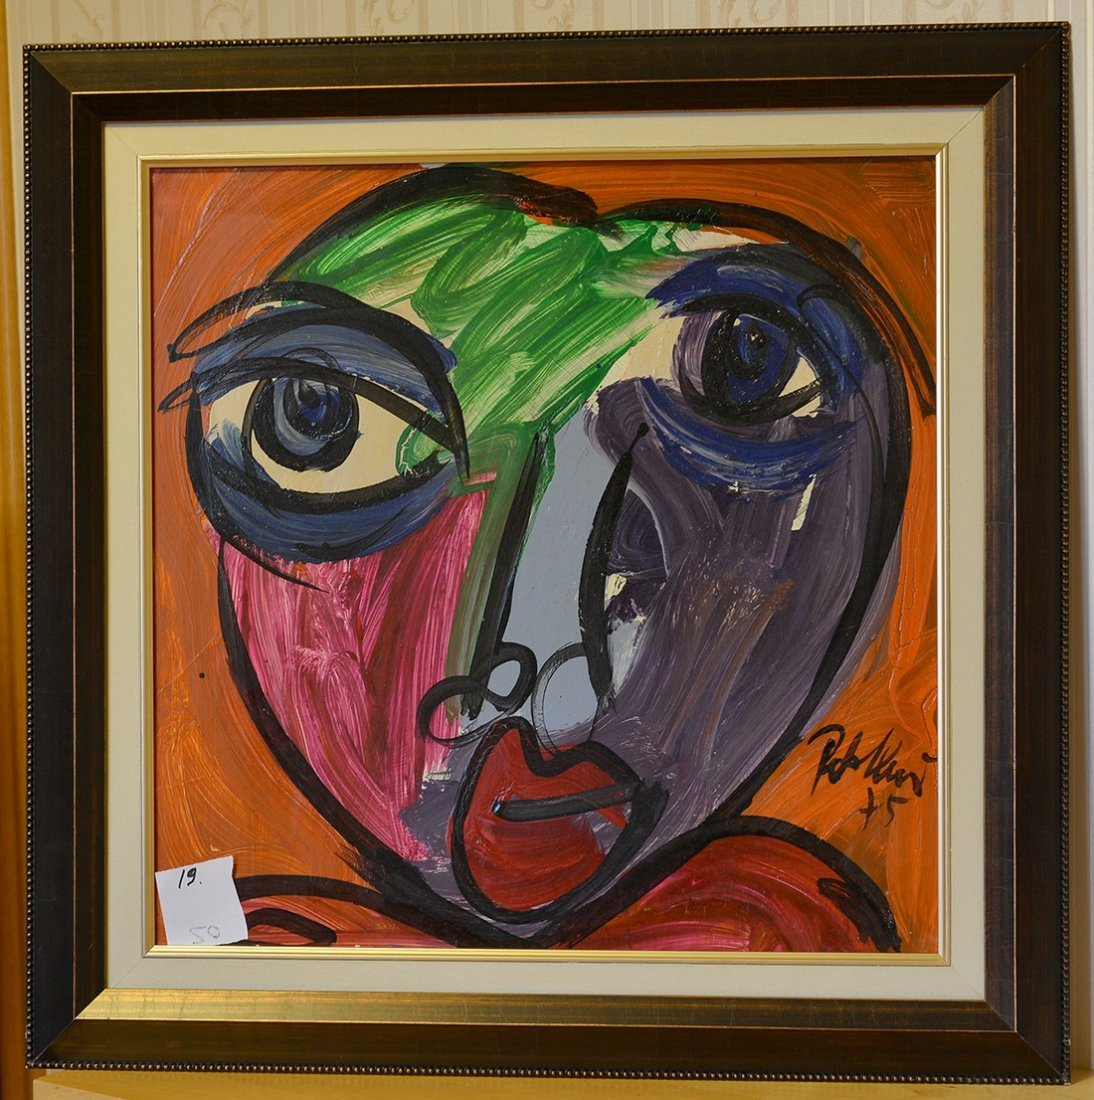 Great painting by Peter Keil, Face 14